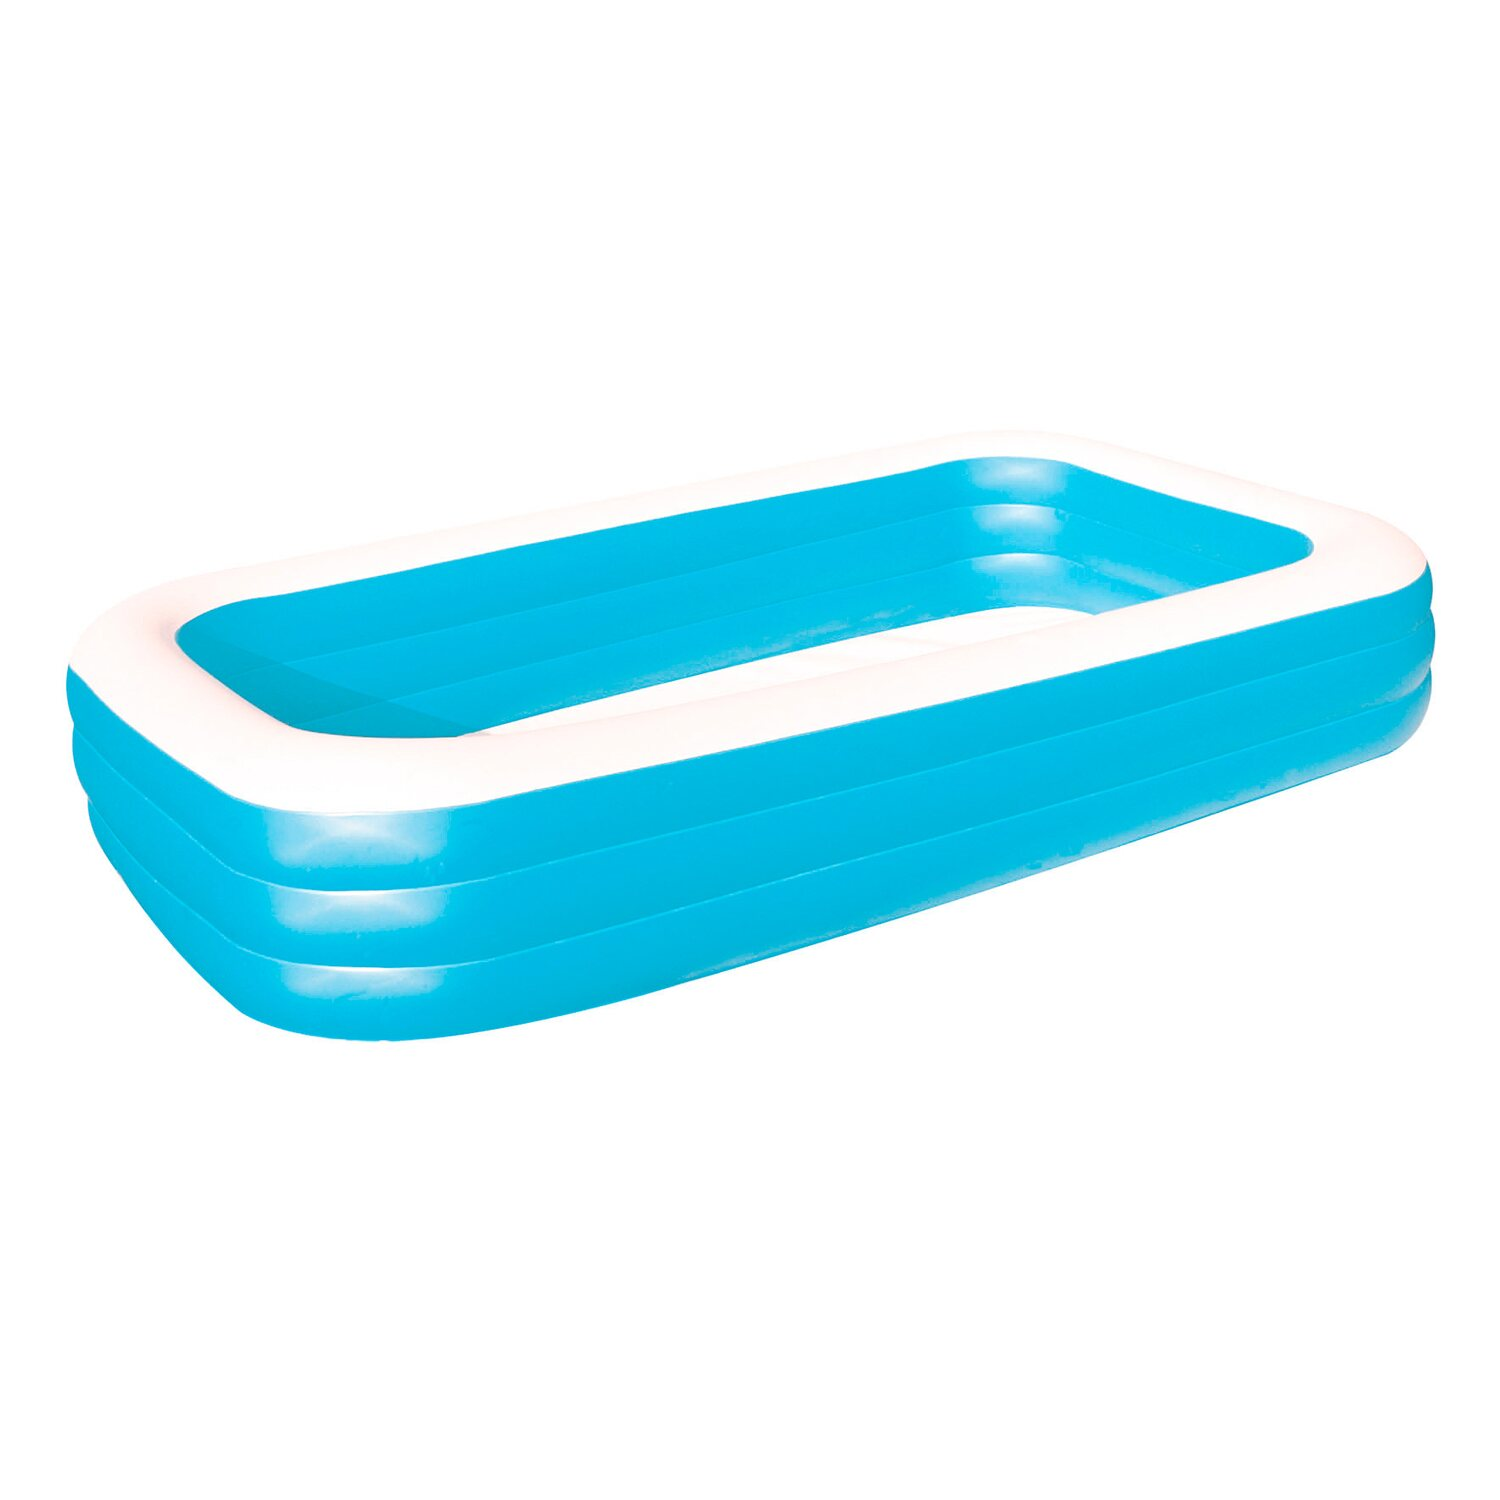 Bestway swimming pool family kaufen bei obi for Obi sandfilteranlage pool